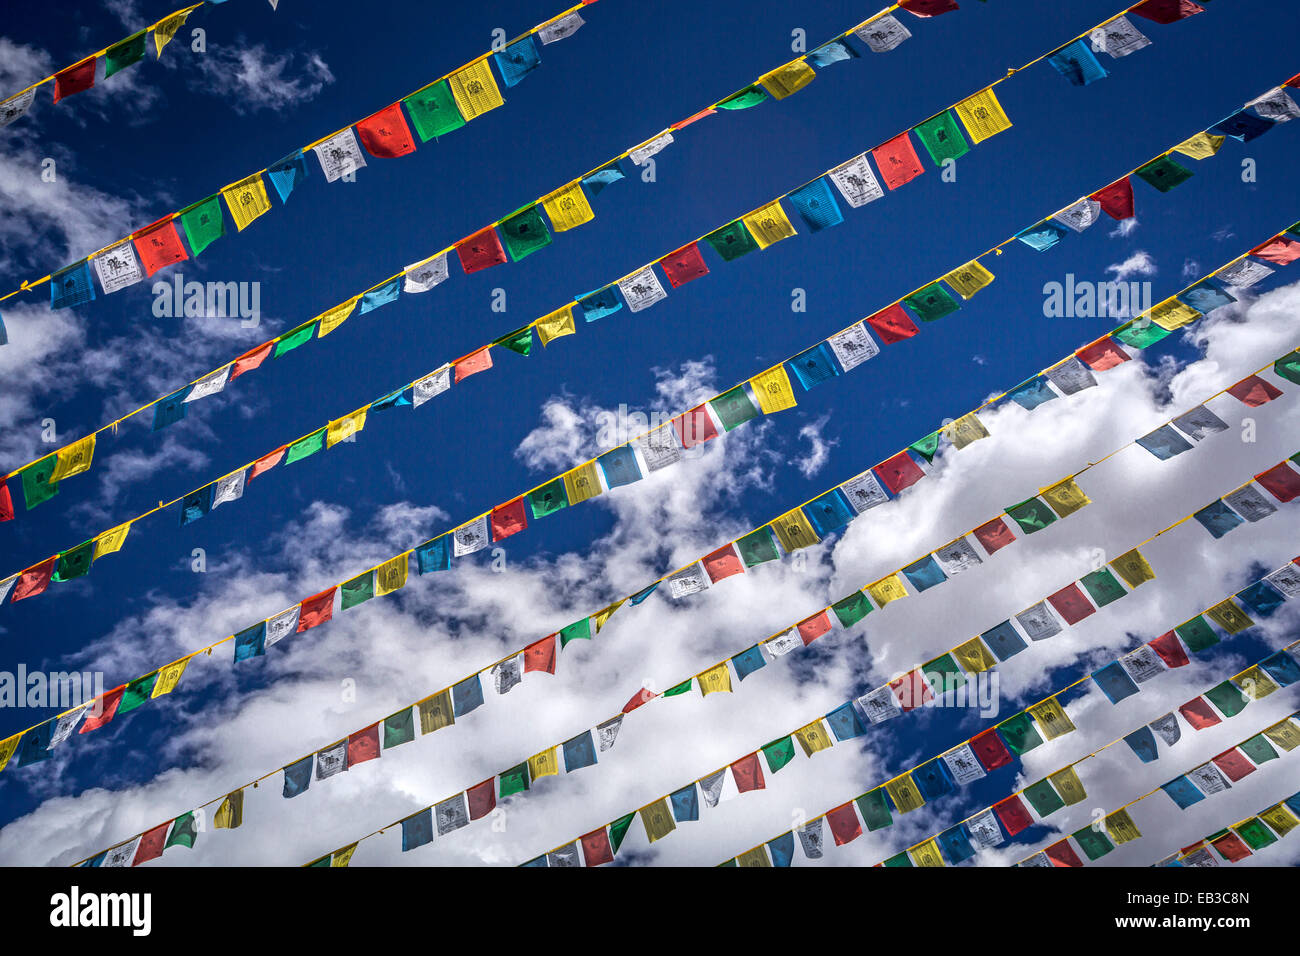 Praying flags in blue sky - Stock Image